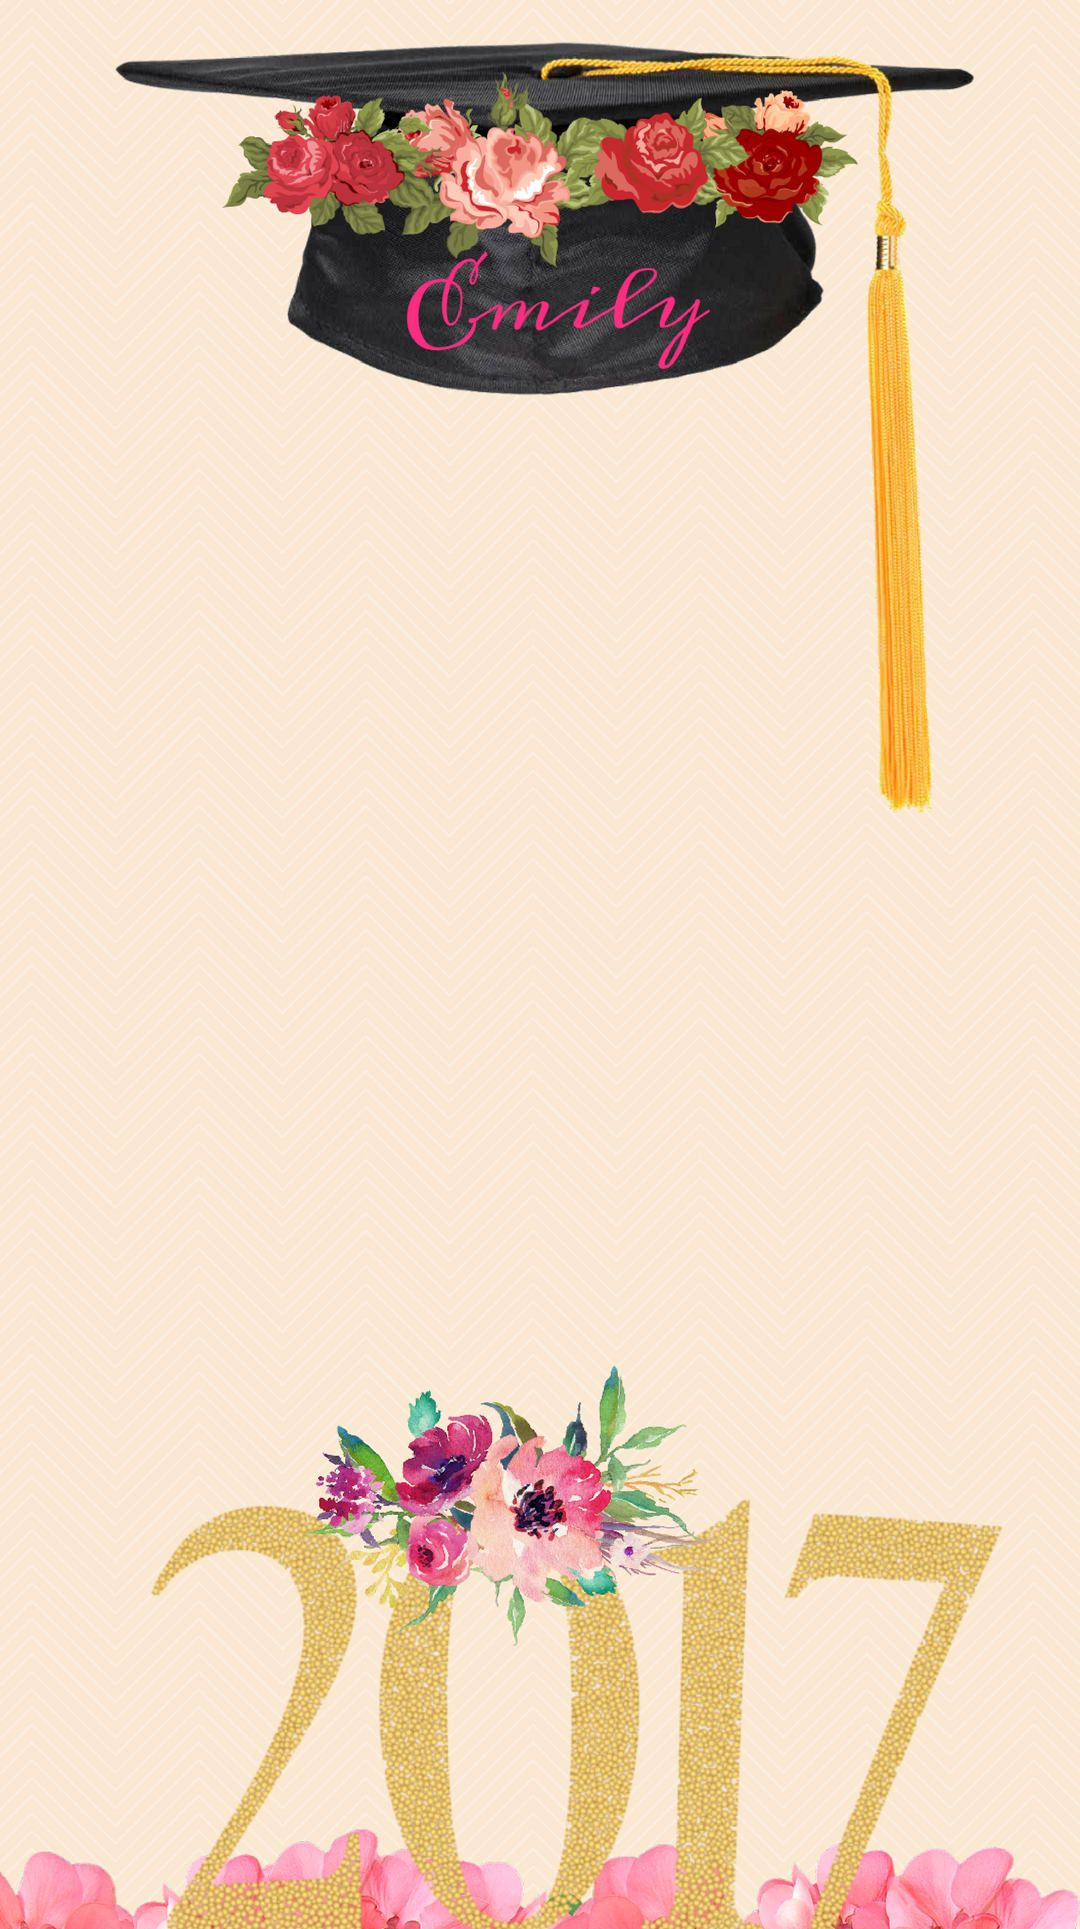 Graduate Snapchat Filter Geofilter Geotag By Miasoffice On Etsy Flower Crown Drawing Graduation Photos Crown Drawing